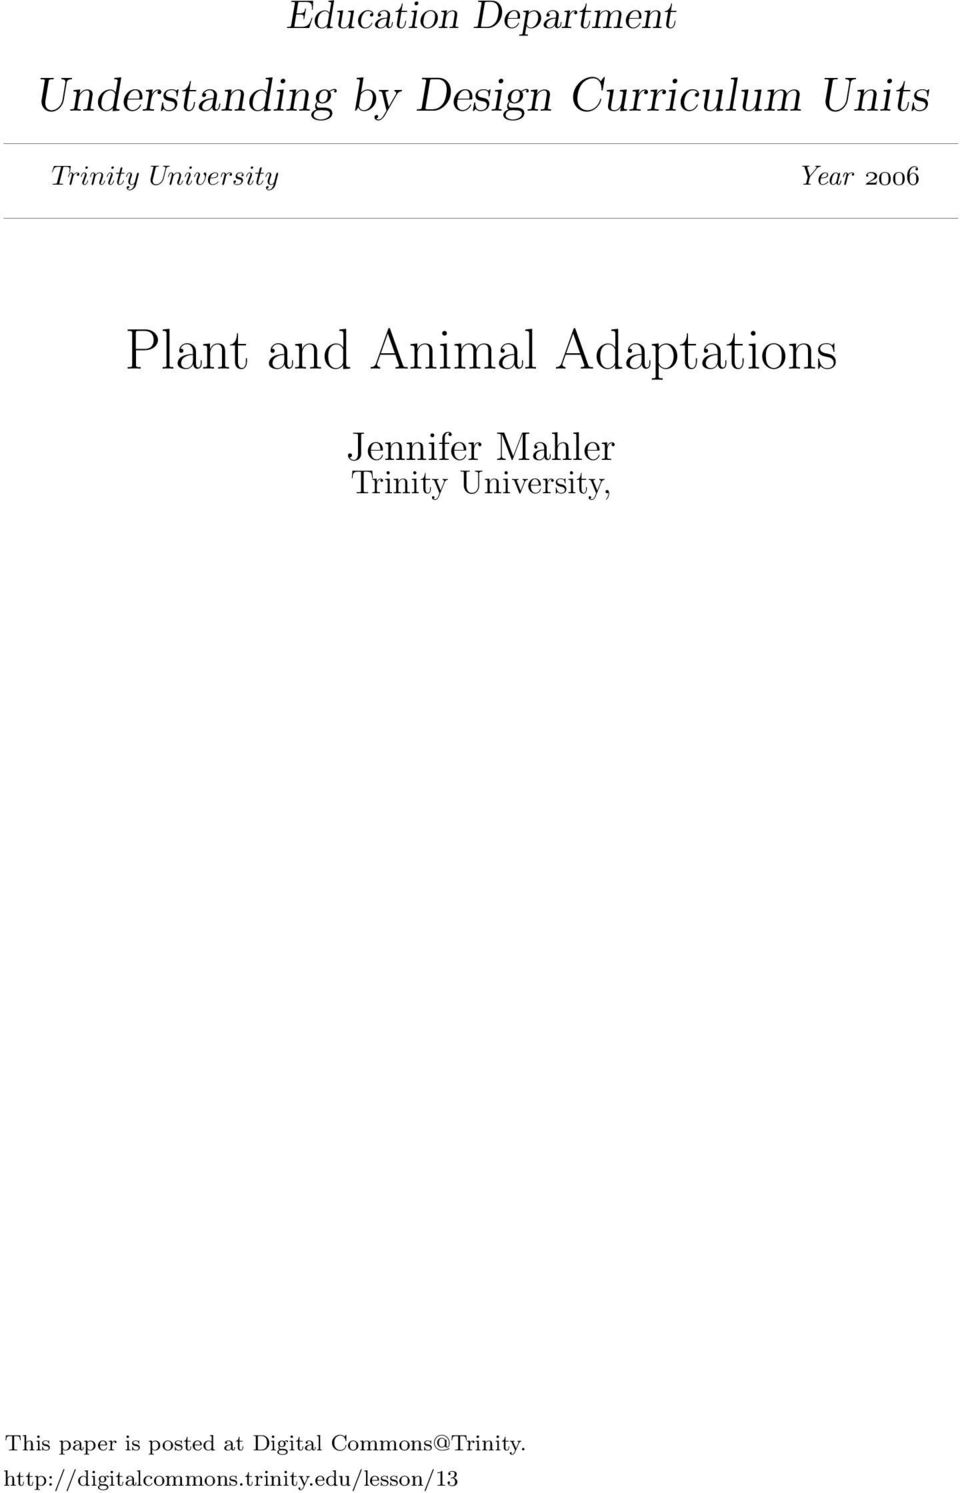 hight resolution of Plant and Animal Adaptations 4th grade - PDF Free Download